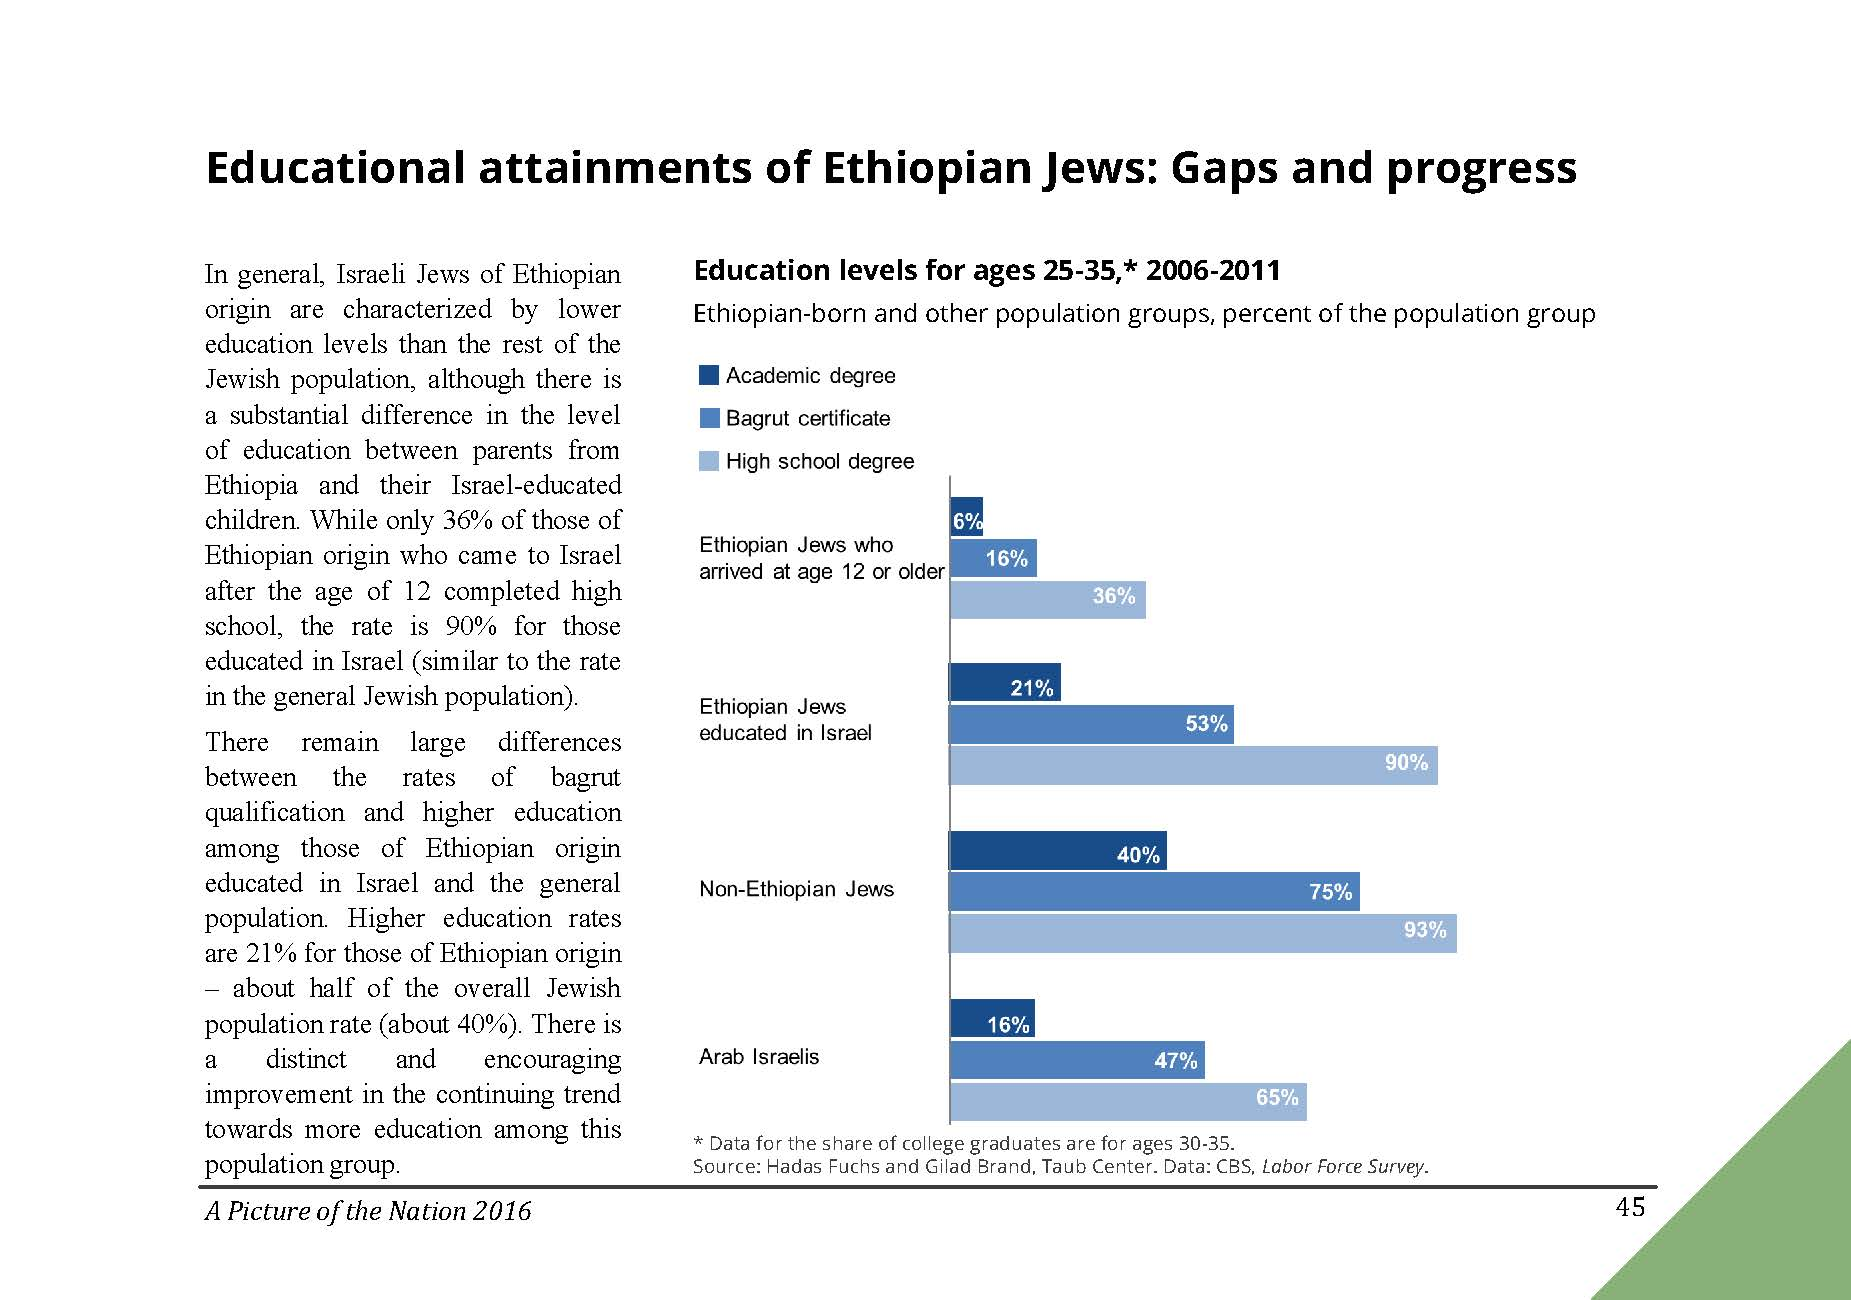 Educational attainments of Ethiopian Jews: Gaps and progress